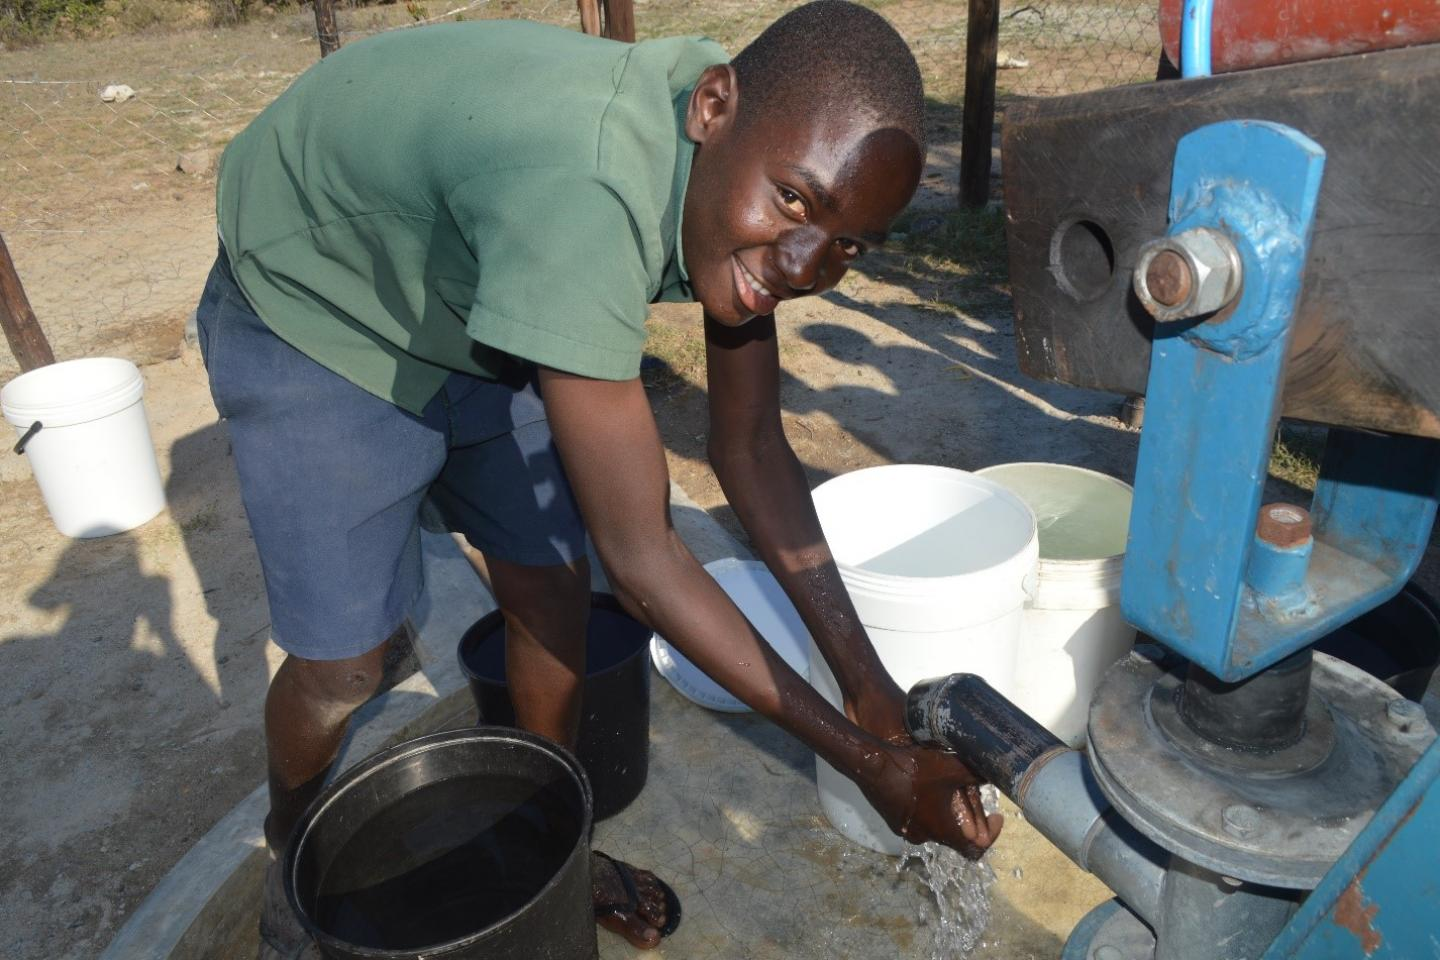 Mutsvene Sibanda washes his hands at the new borehole standpipe at his school, Zeruvi Primary